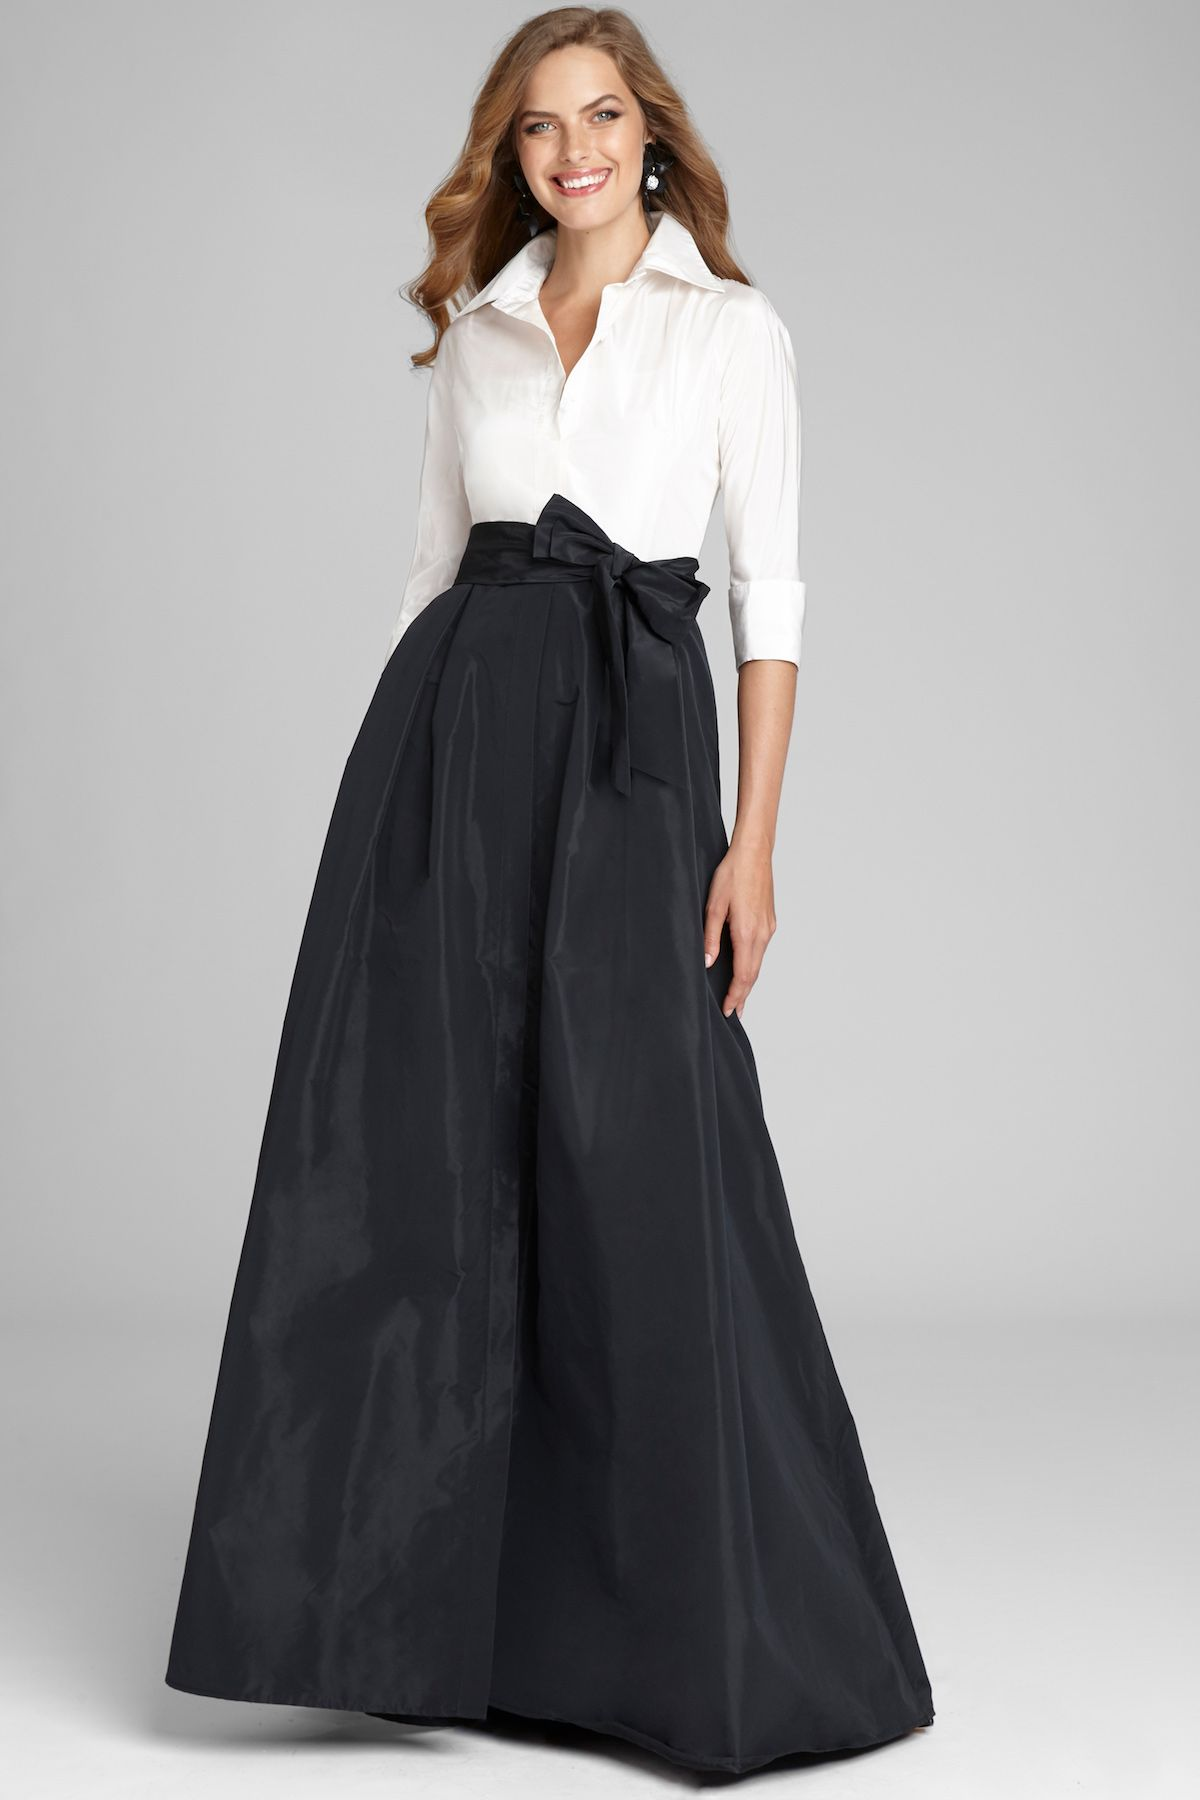 3 4 Sleeve Taffeta Shirt Waist Color Block Gown Mother Of The Bride Dresses Long Gowns Long Sleeve Evening Gowns [ 1800 x 1200 Pixel ]